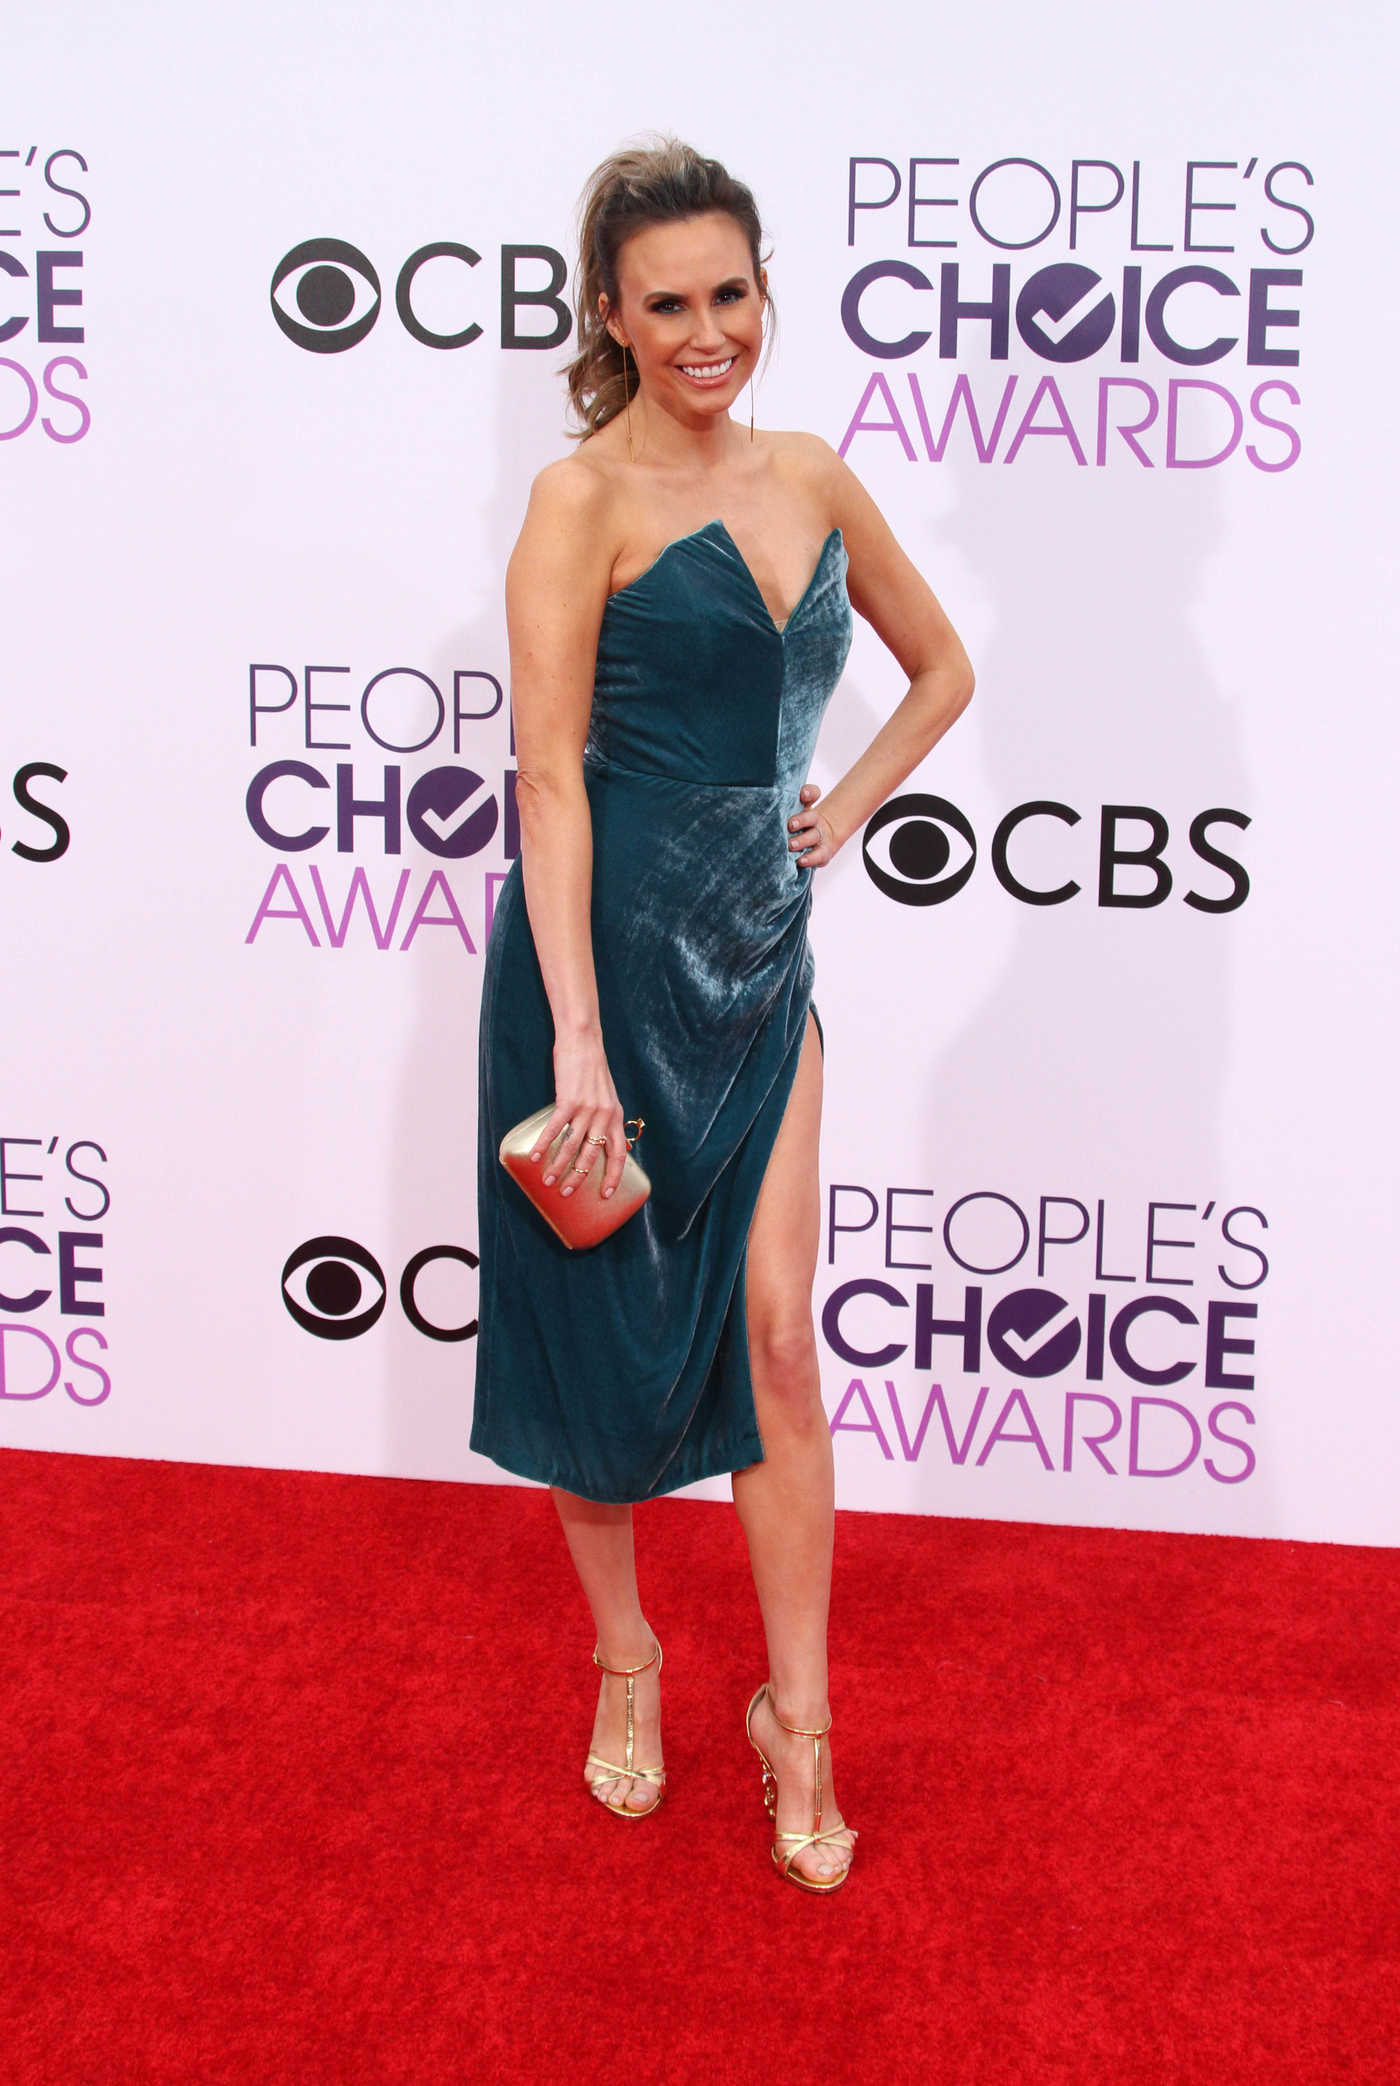 Keltie Knight at the 43rd Annual People's Choice Awards in Los Angeles 01/18/2017